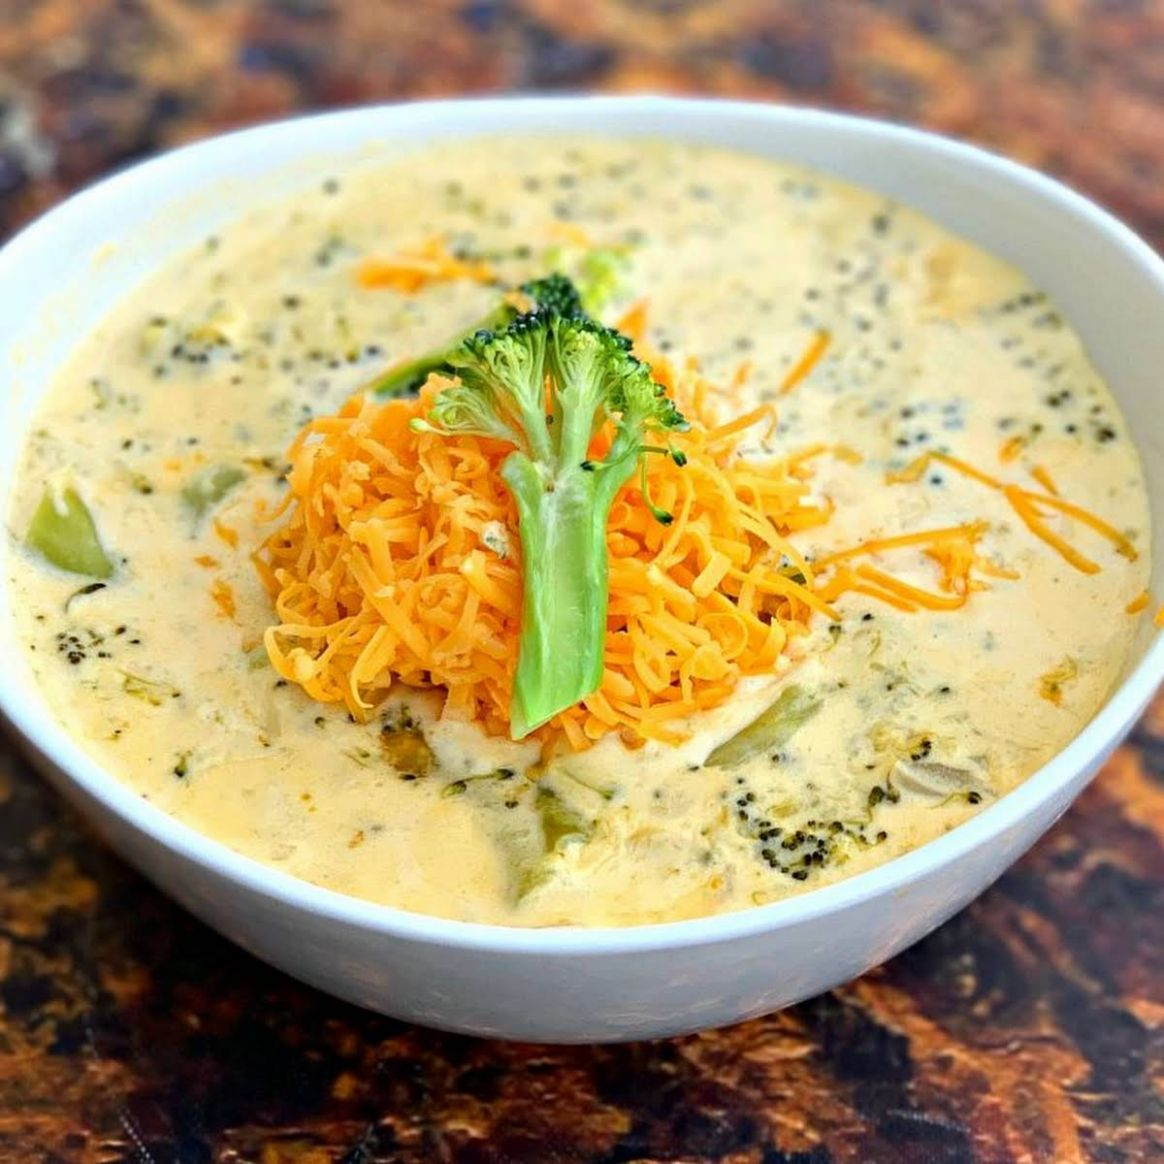 Easy Keto Low-Carb Instant Pot Panera Broccoli Cheddar Cheese Soup - Soup Recipes Yummly